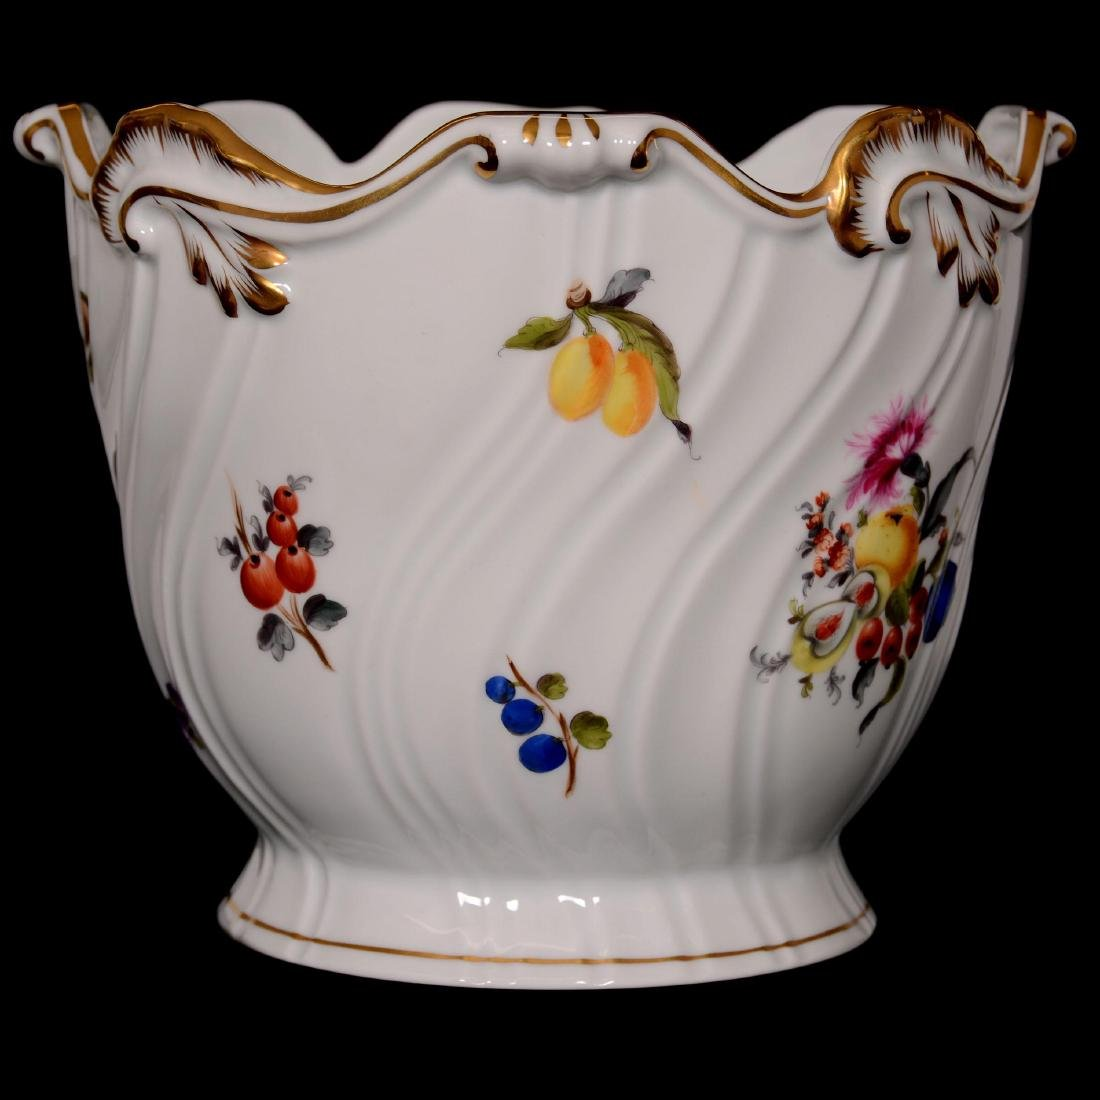 Herend Hungary Porcelain Hand Painted Jardiniere - 2